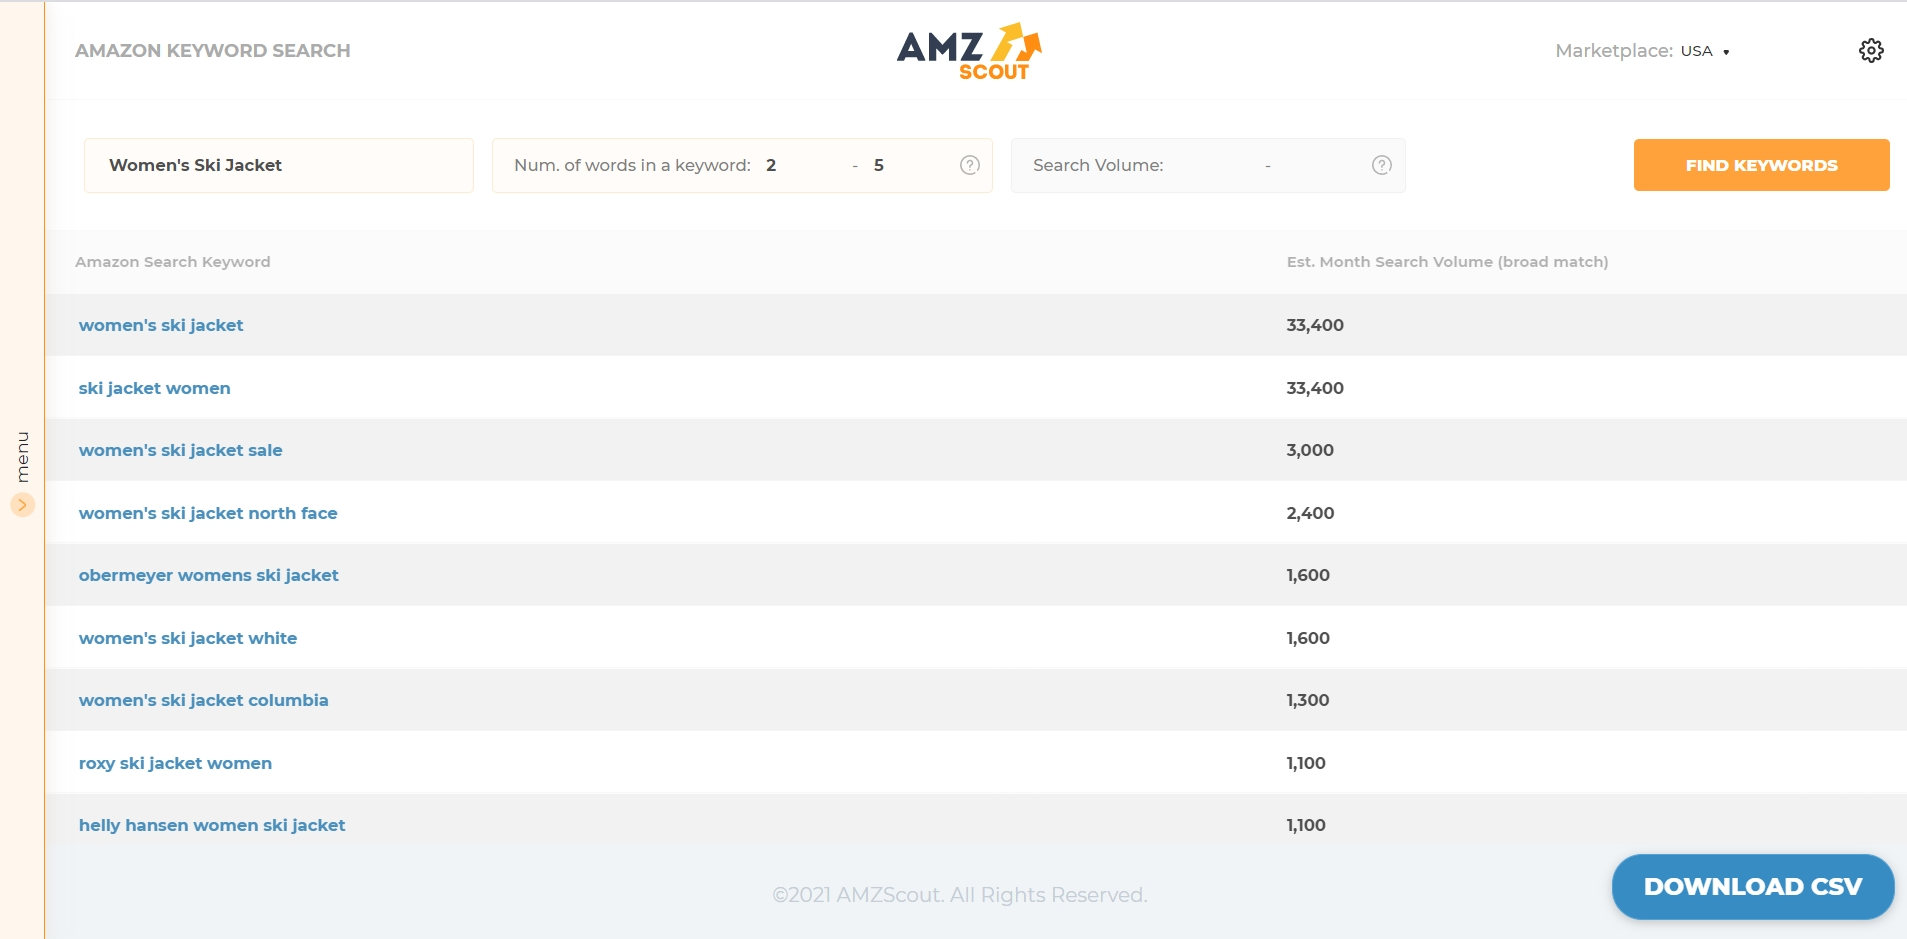 Check keywords with AMZScout to find products